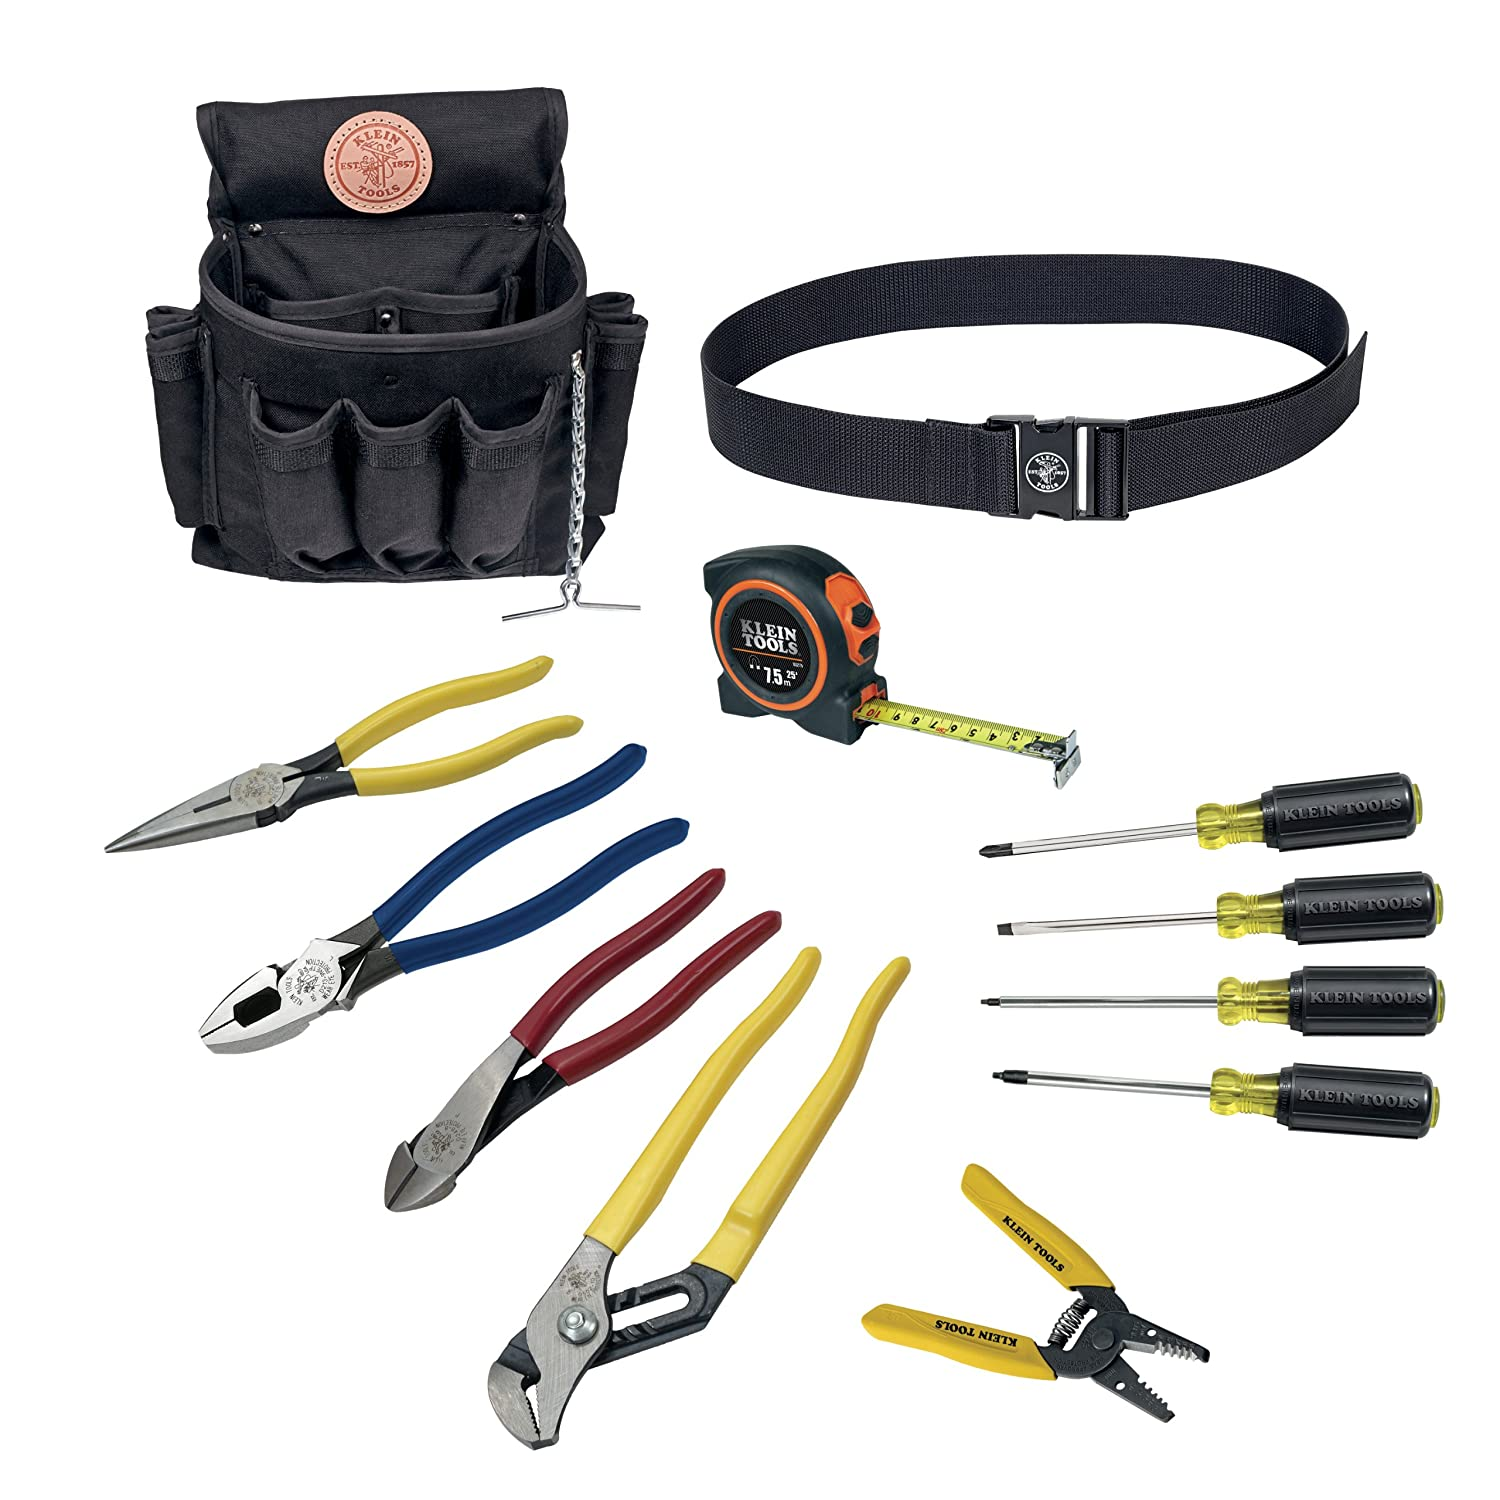 Klein Tools 92003 Electrician Tool Set 12 Piece